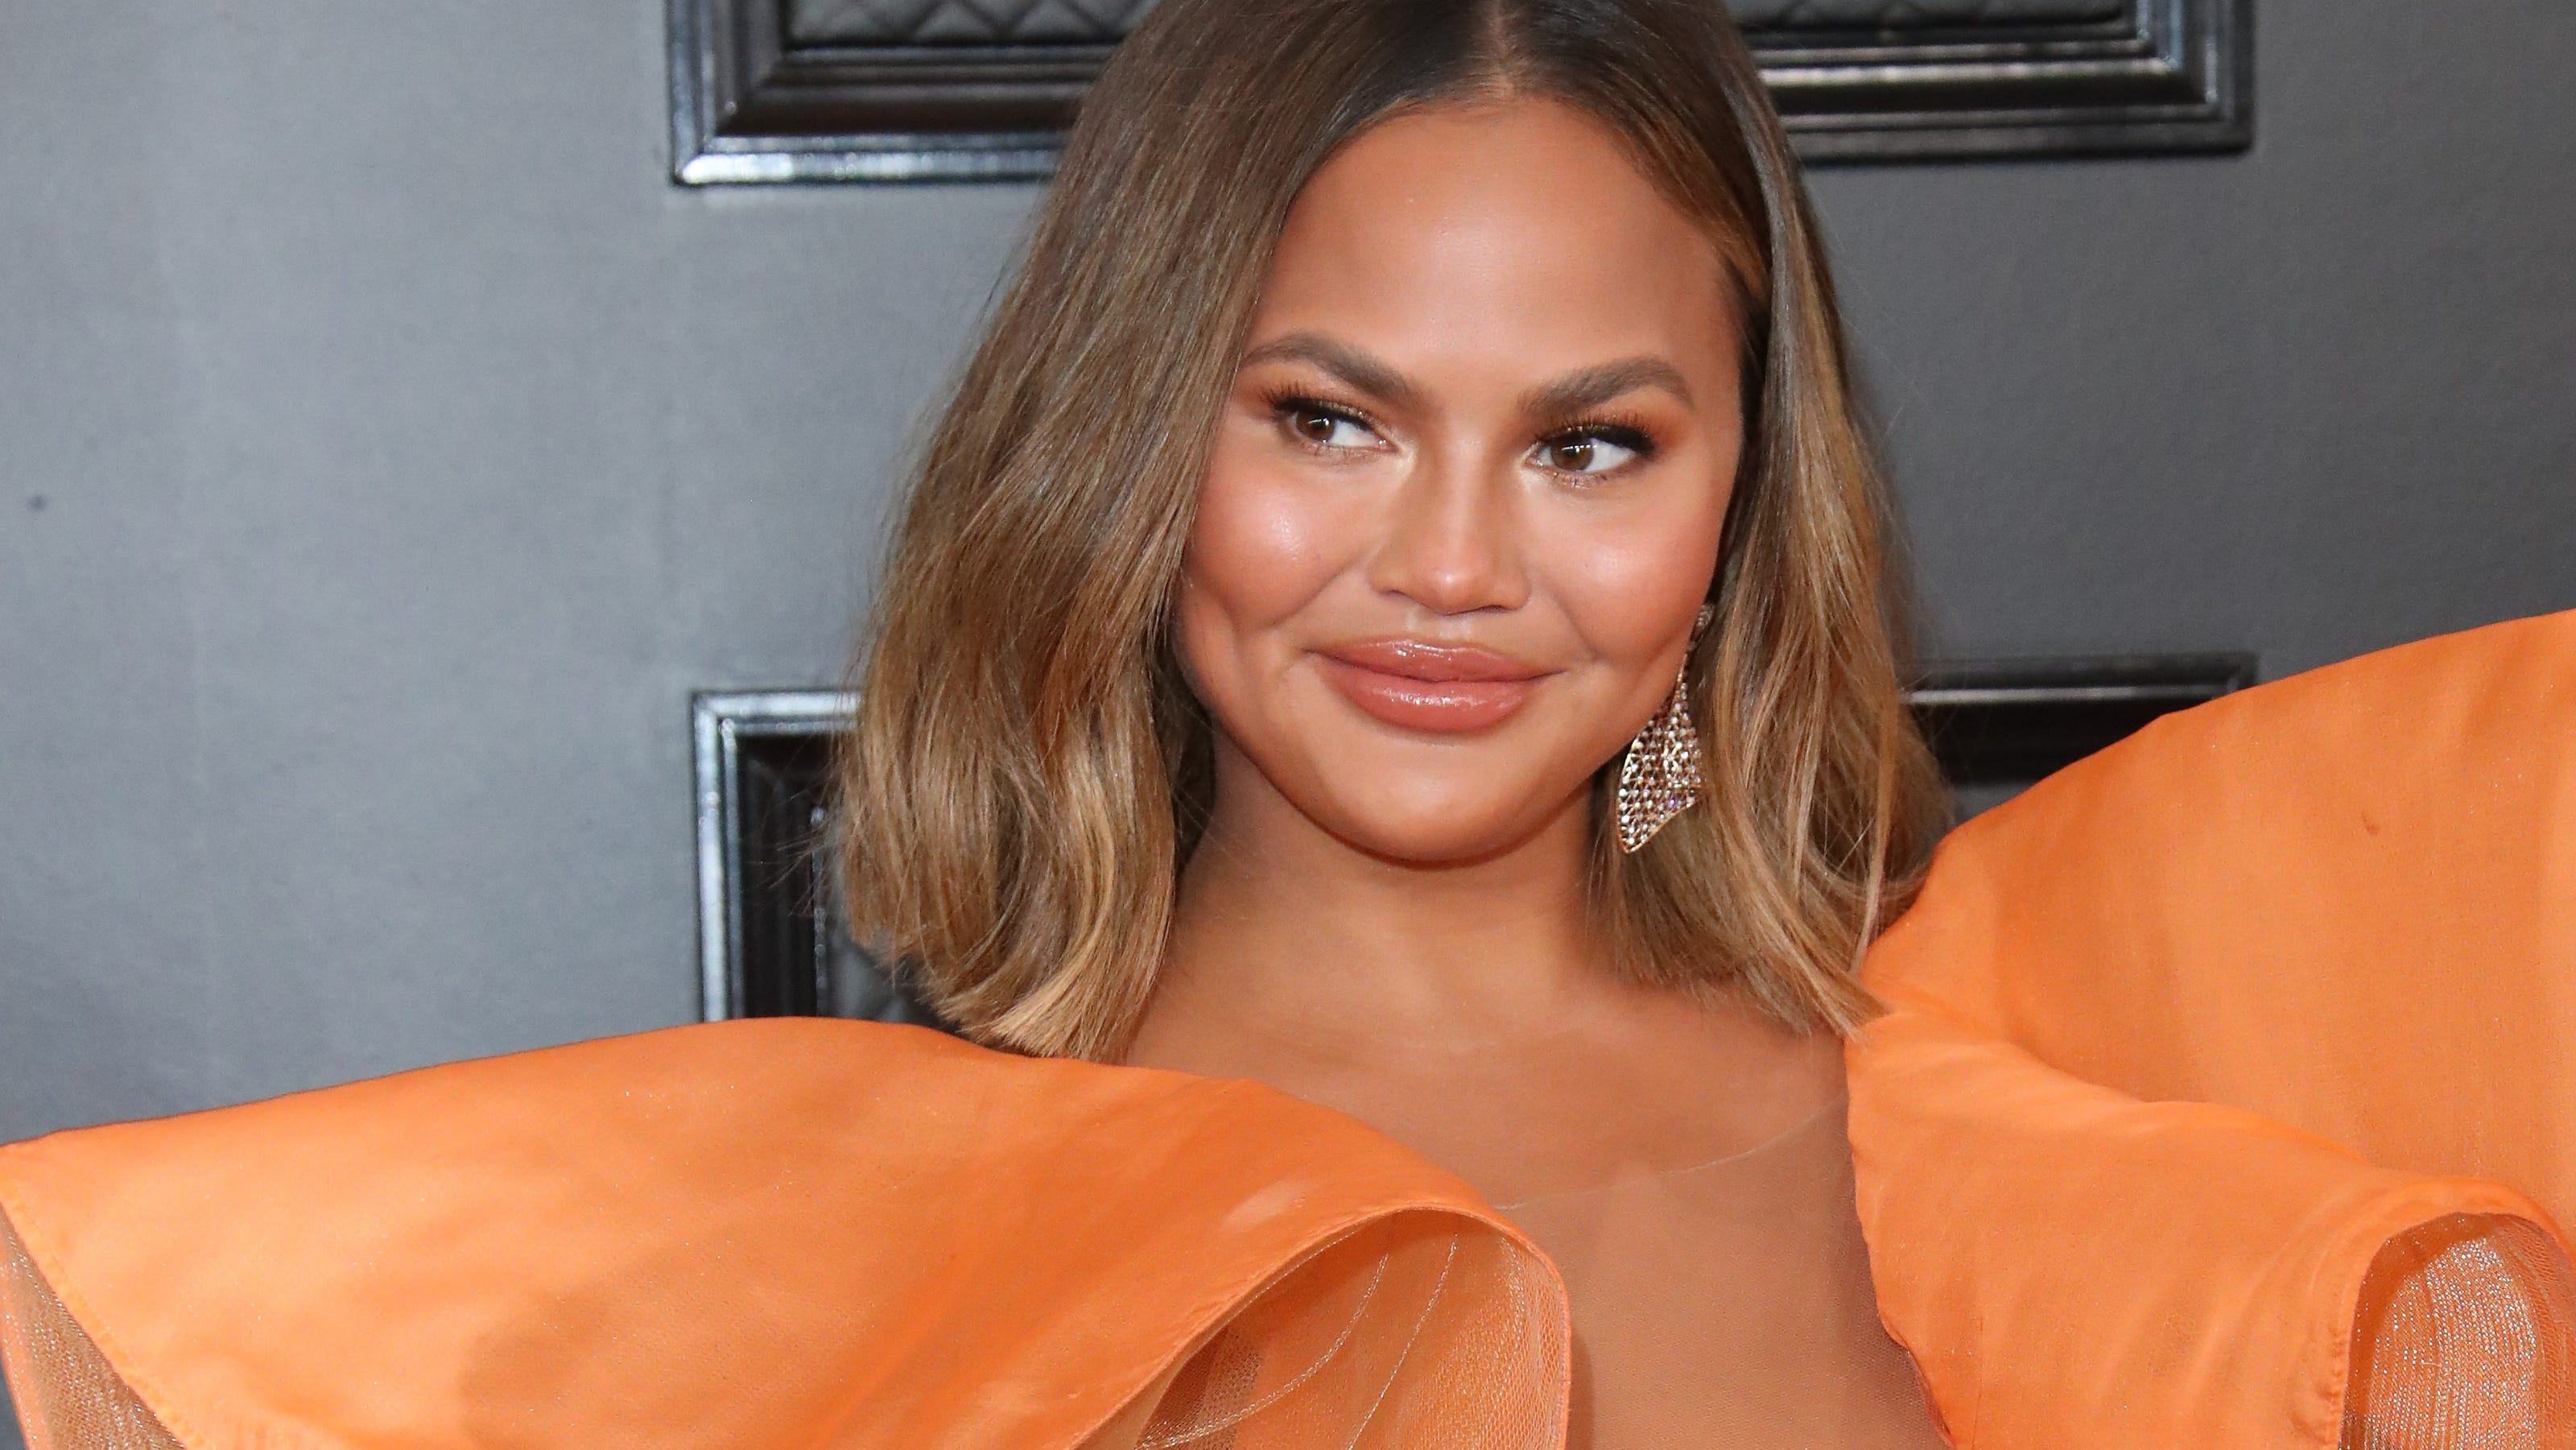 Chrissy Teigen is apologizing for her bullying and mean tweets. Is forgiveness possible?